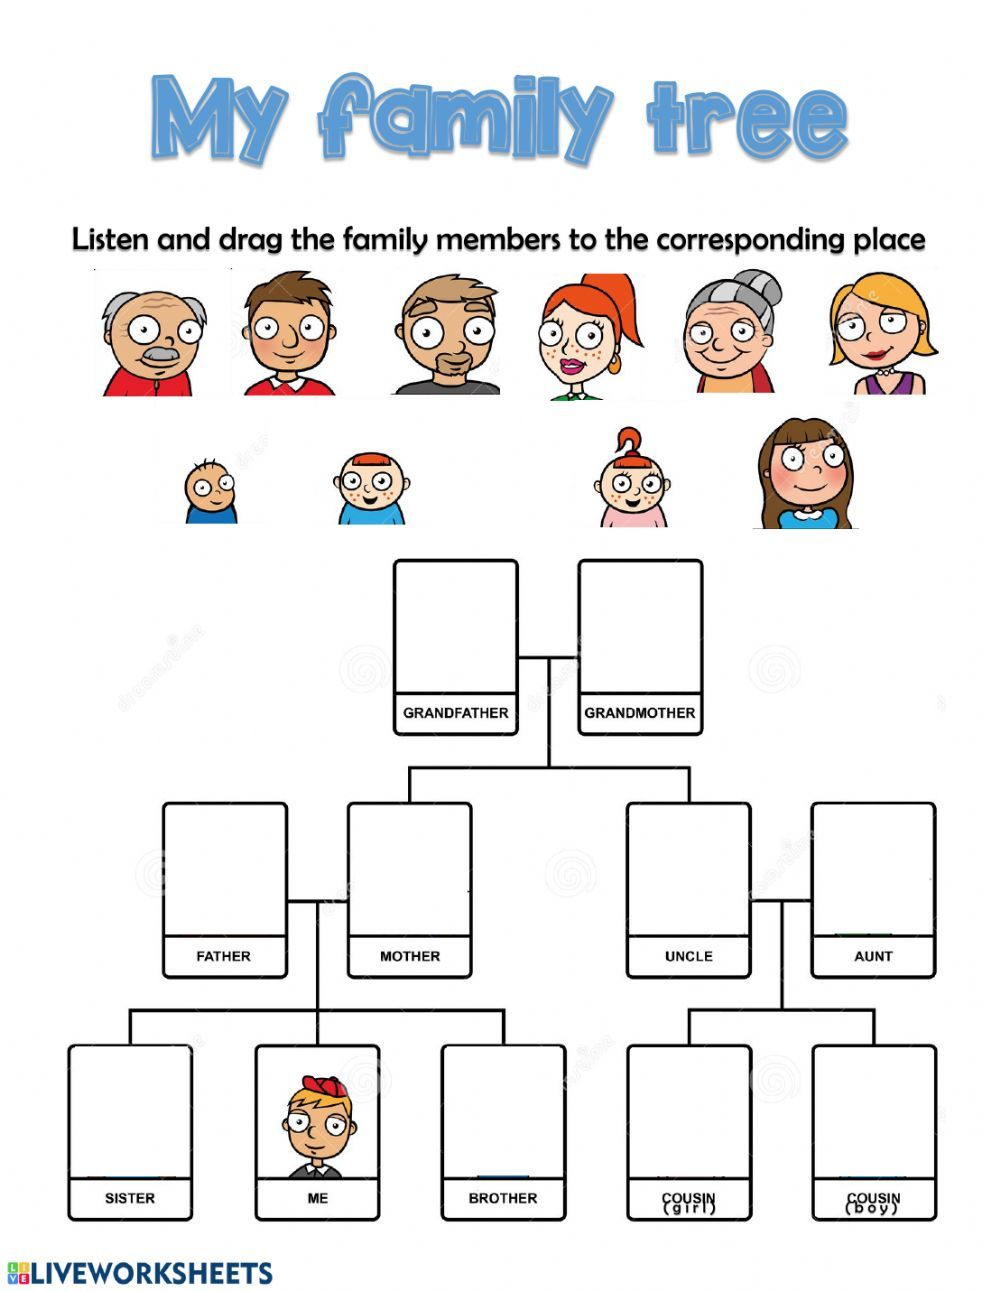 The family interactive and downloadable worksheet. You can